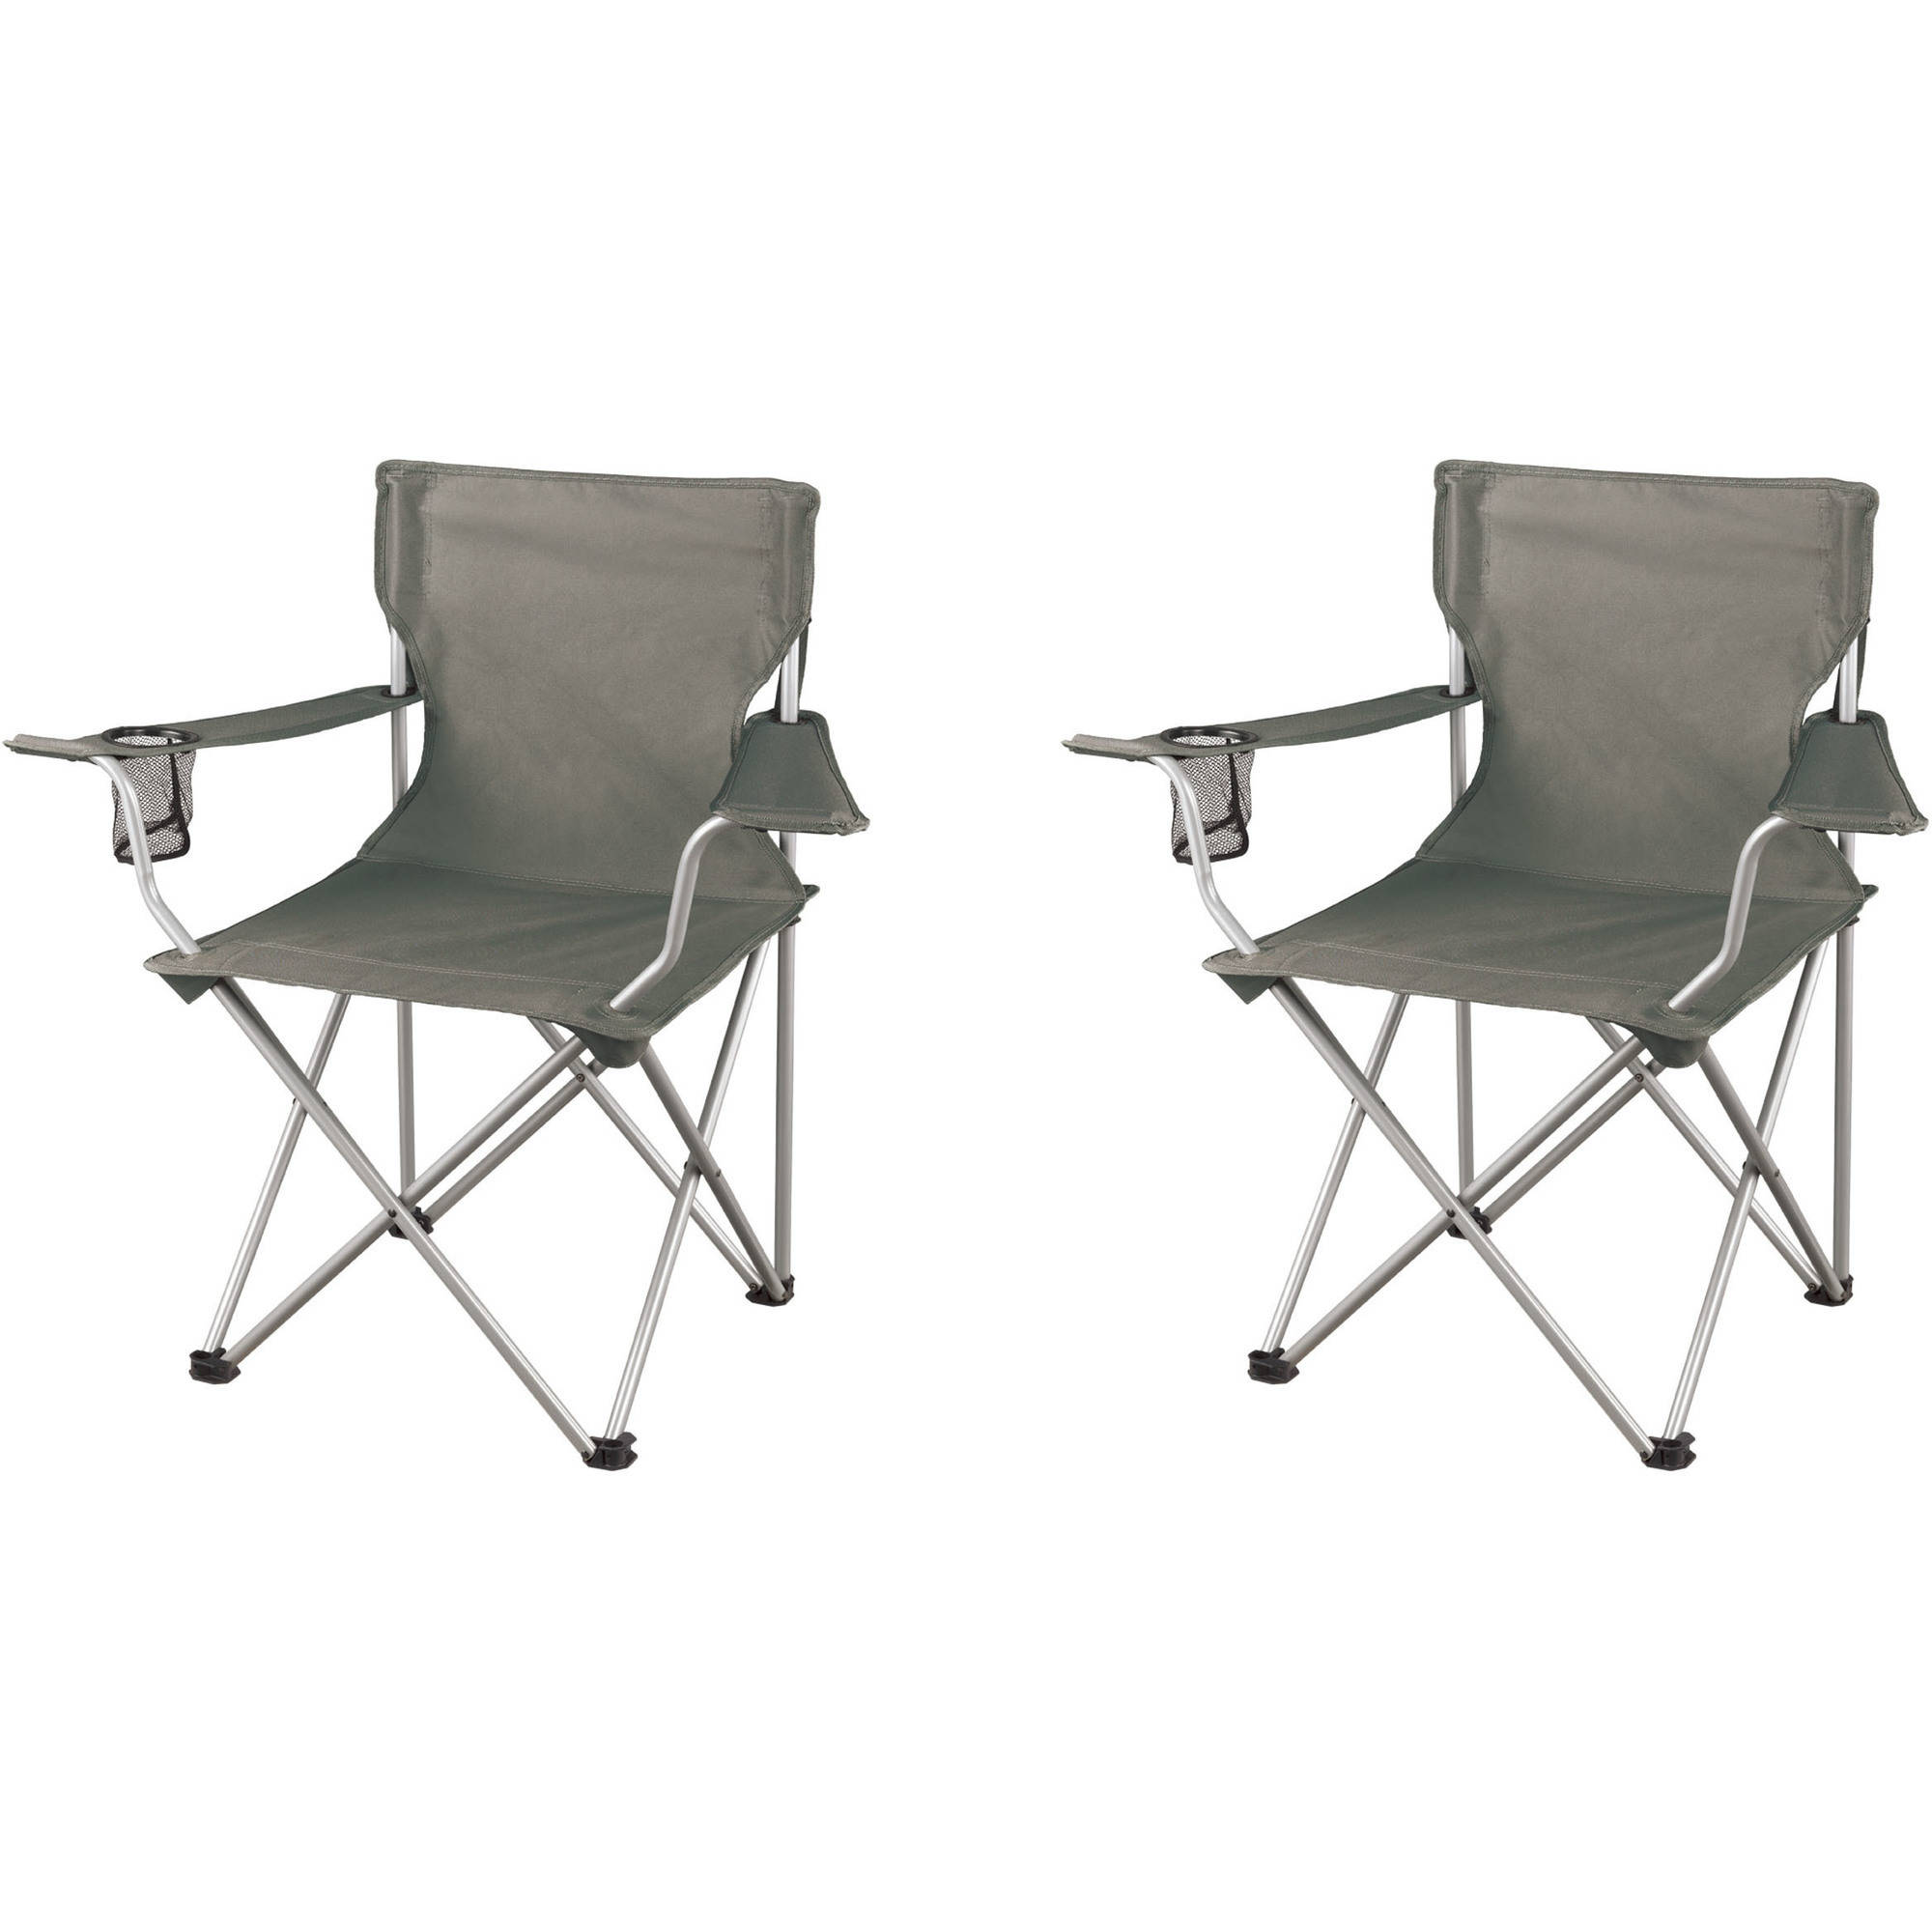 Ozark Trail Regular Folding Camping Armchairs, Grey, 2-Pack